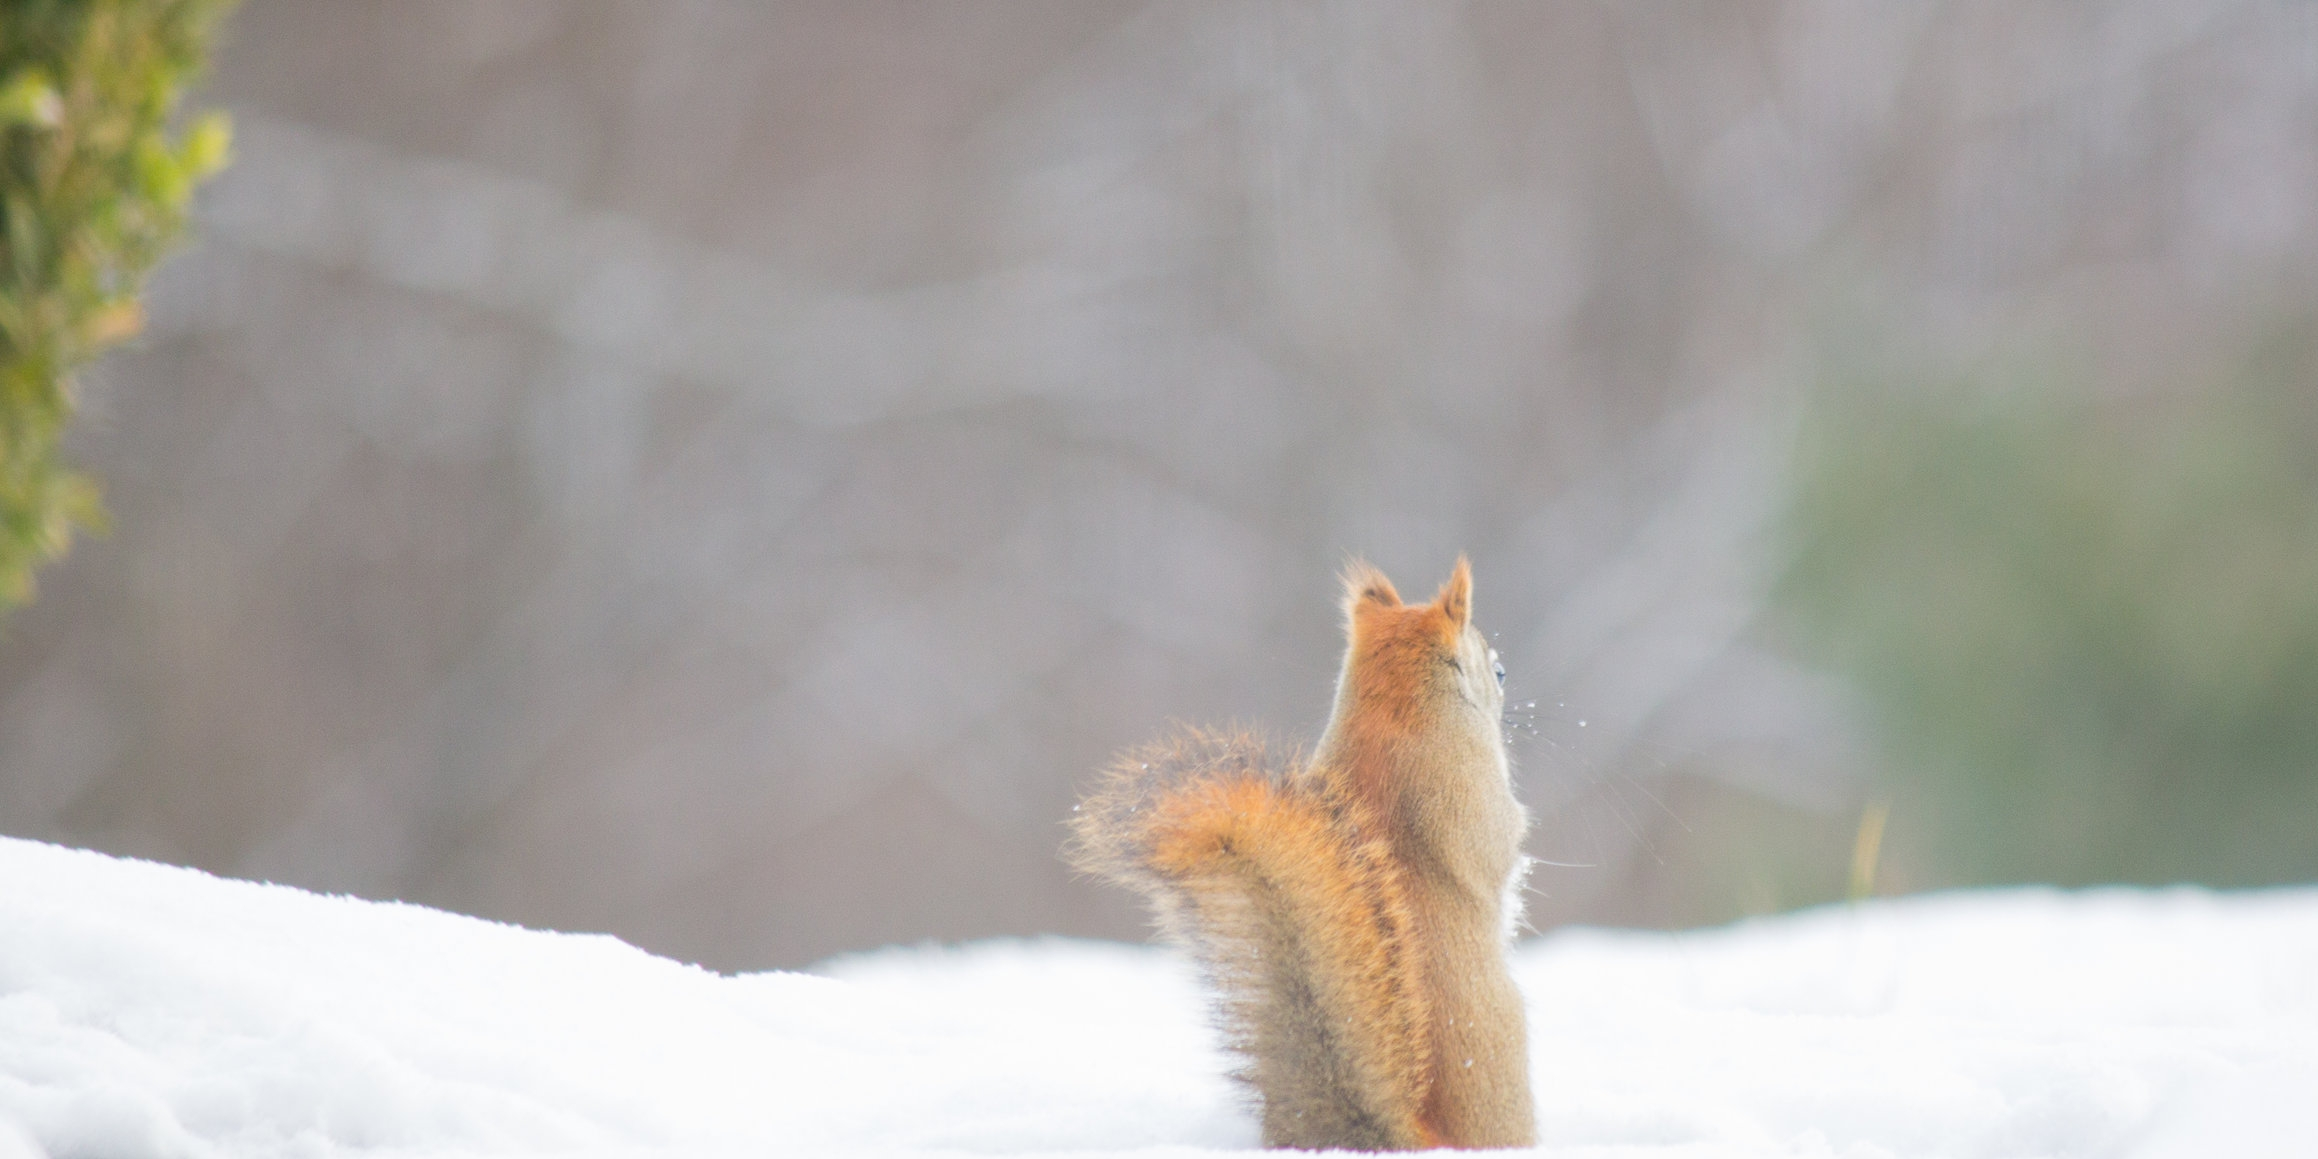 Squirrel in snow by Aaron Clay